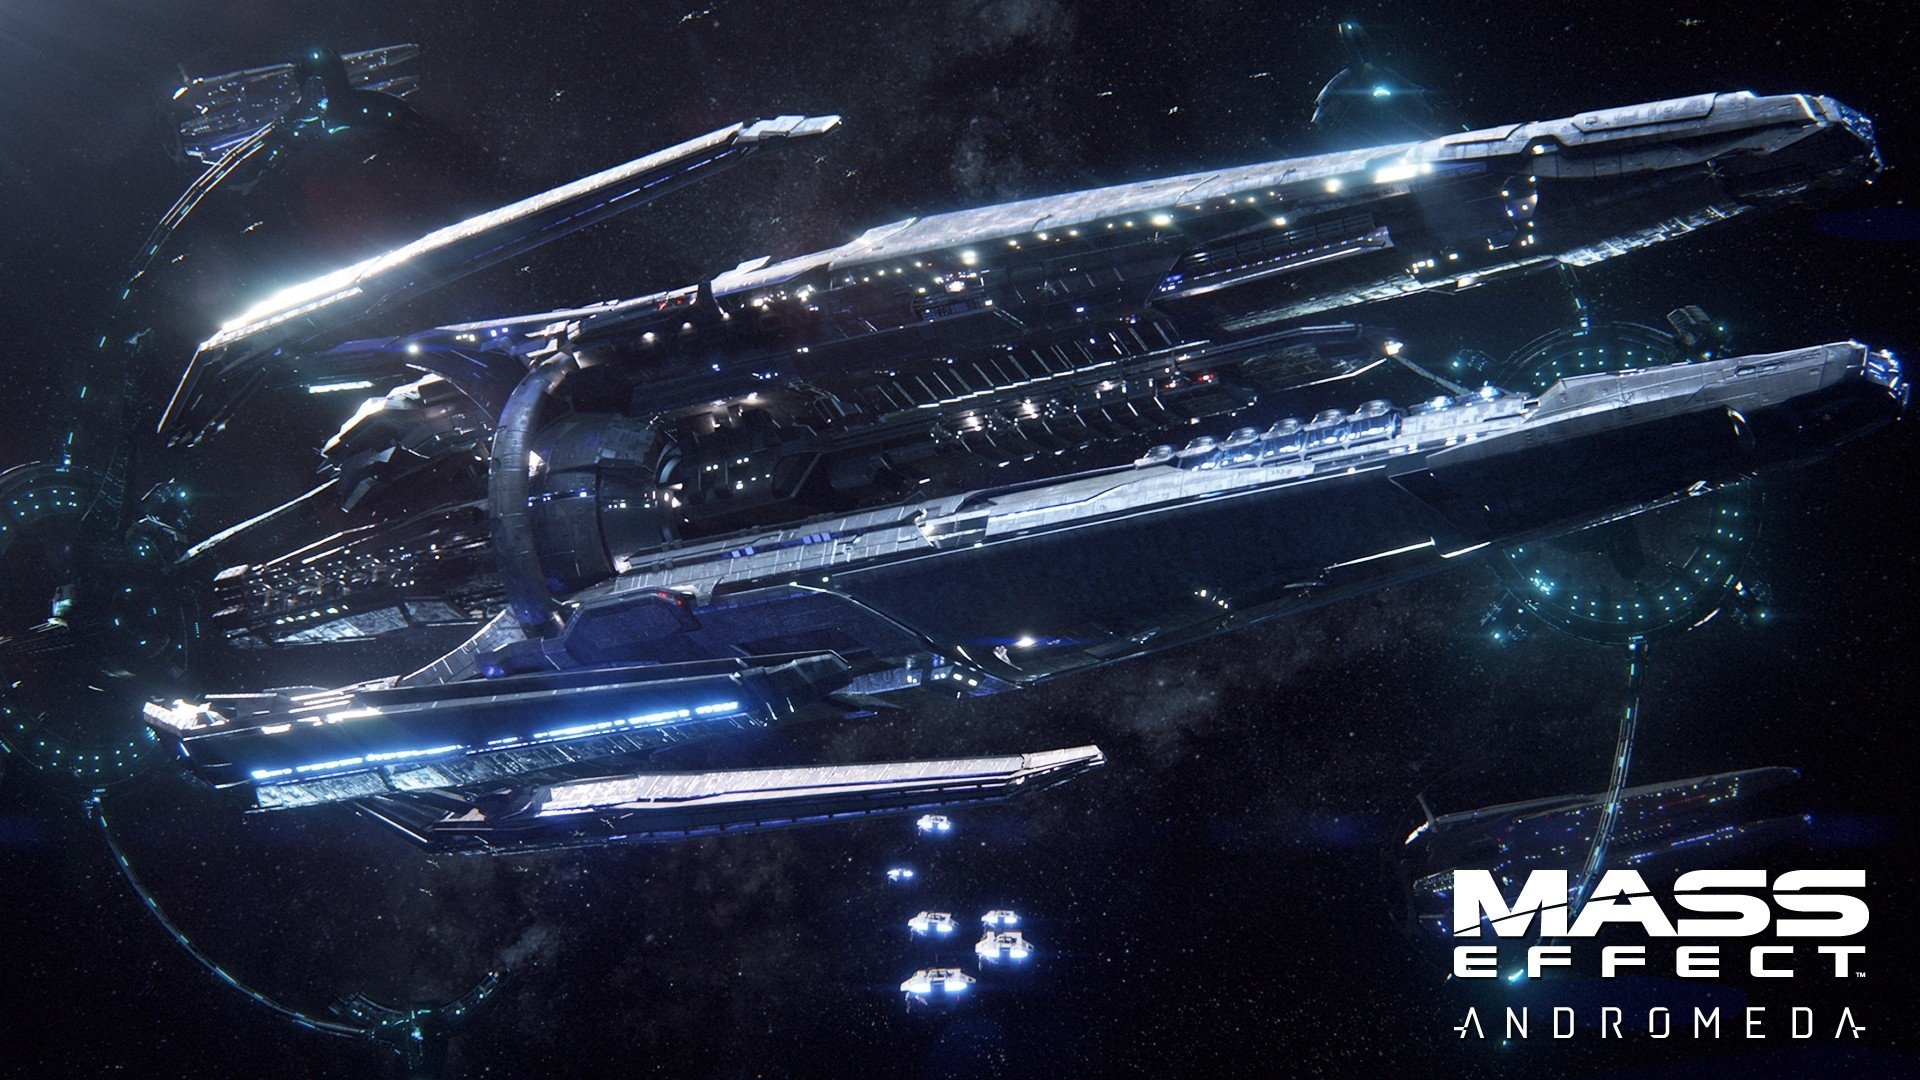 81 Mass Effect Andromeda Hd Wallpapers Background Images